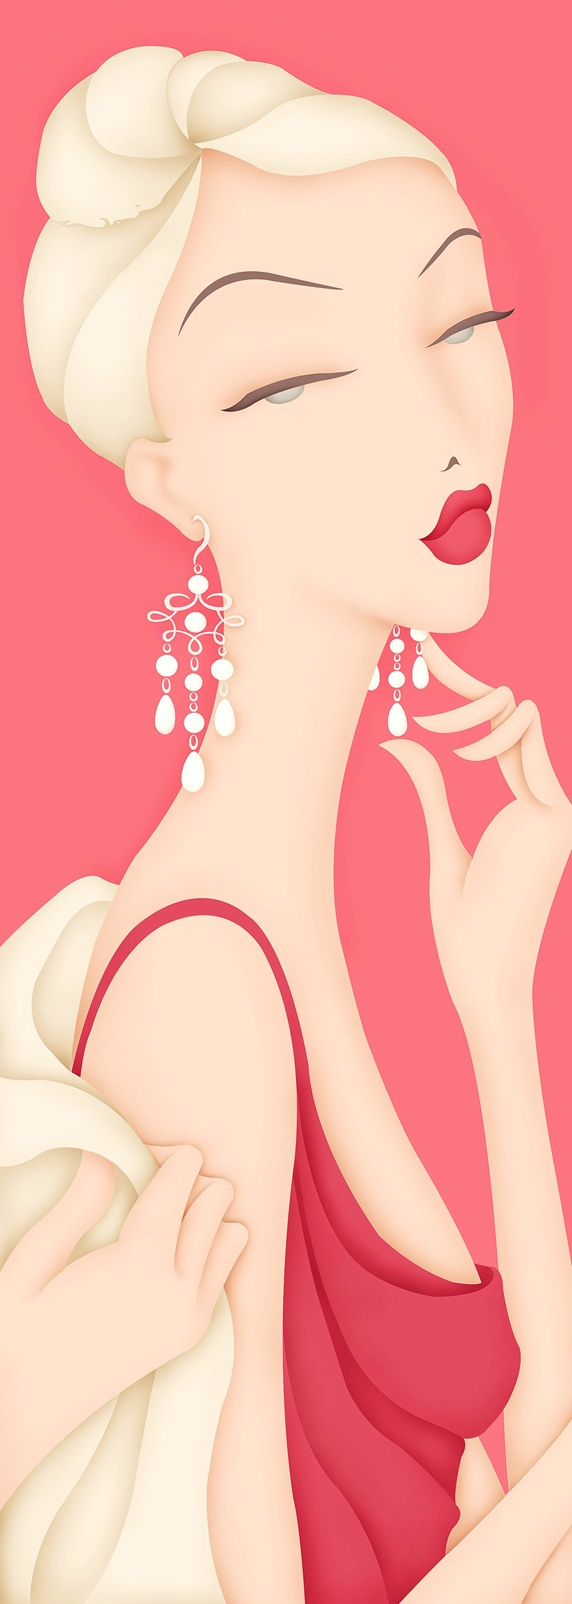 Blonde female wearing elegant red clothing and pearl earrings, pink background